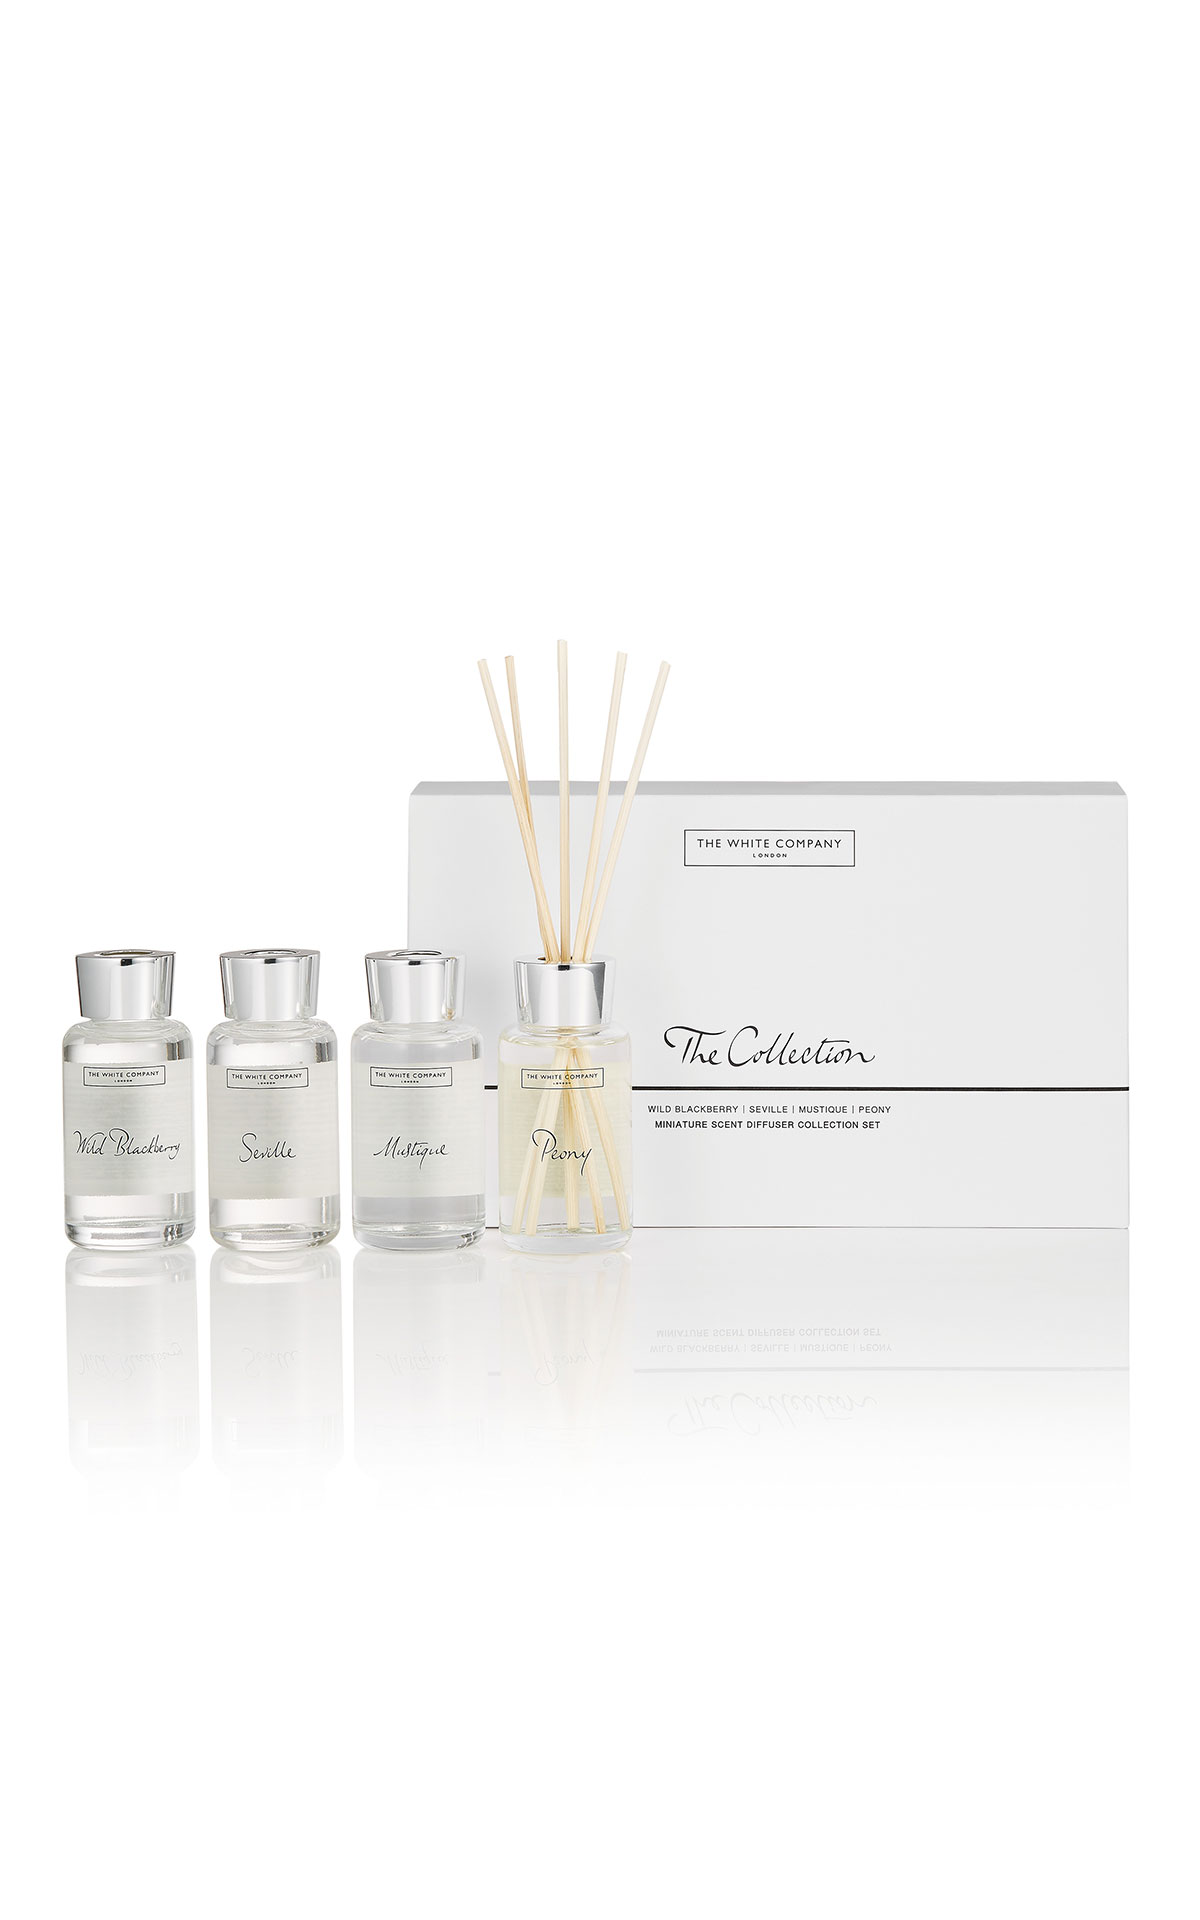 The White Company The collection diffuser set from Bicester Village